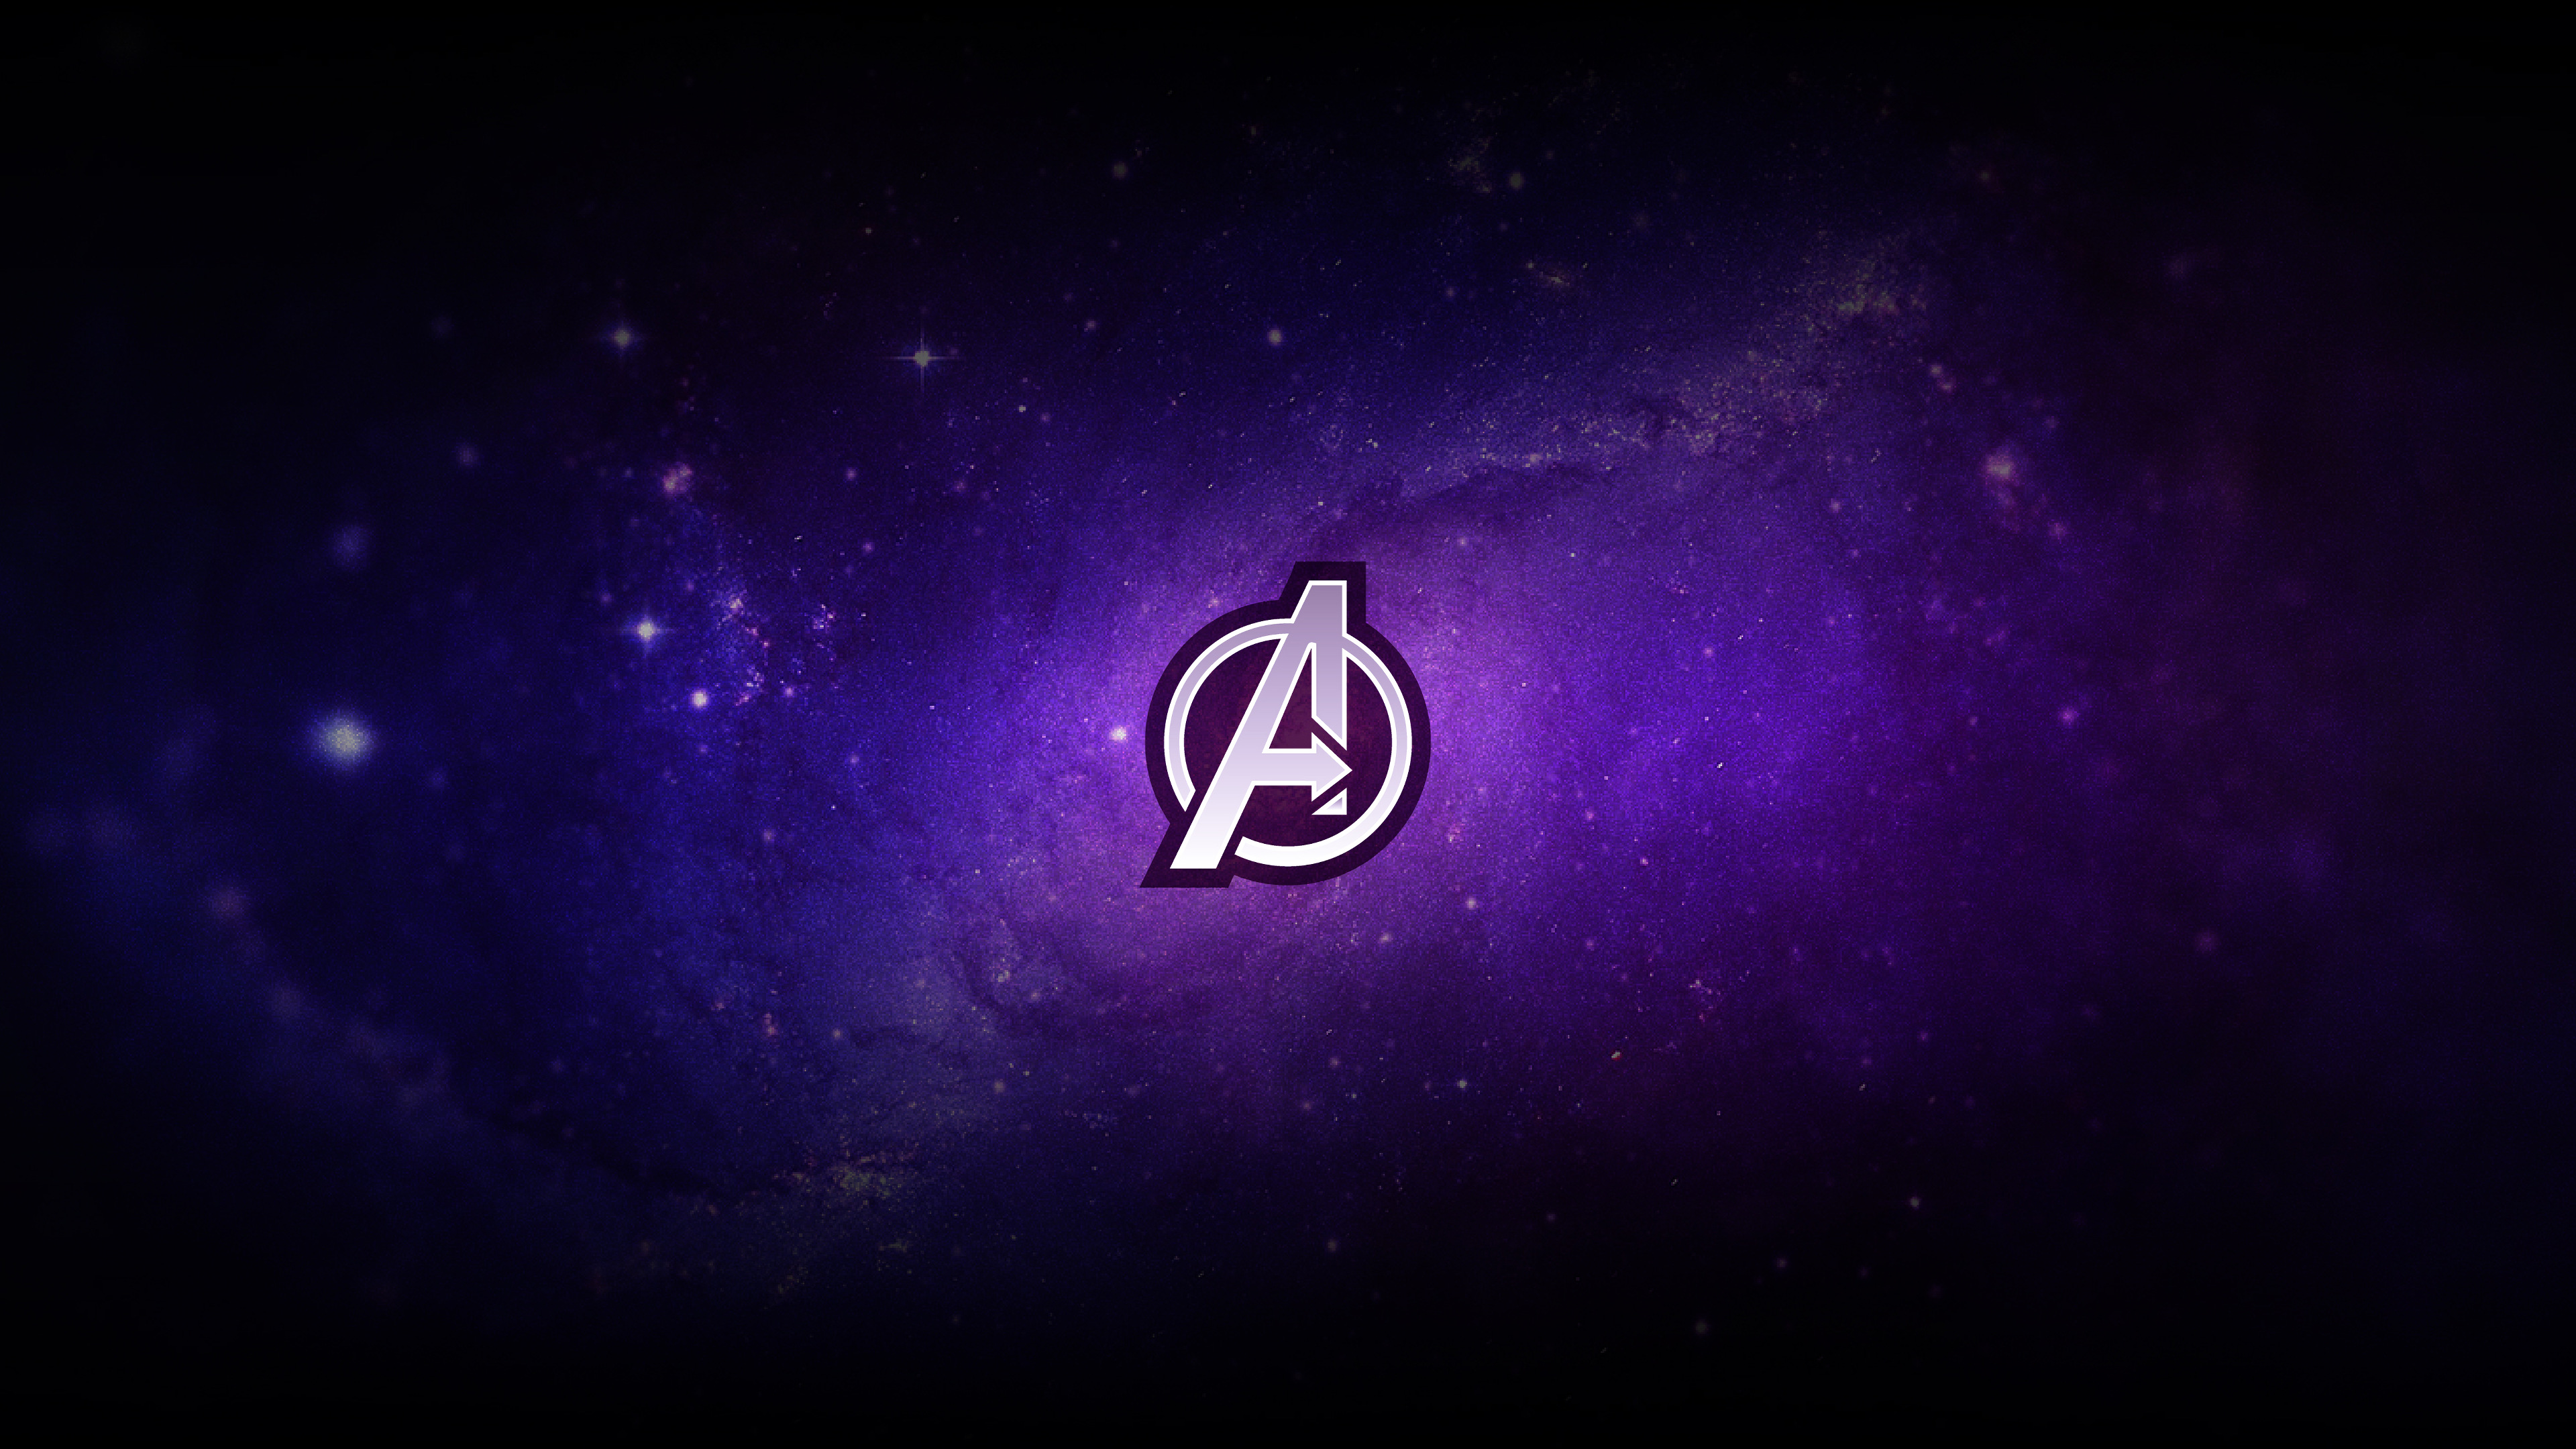 Wallpaper Logo Avengers Endgame